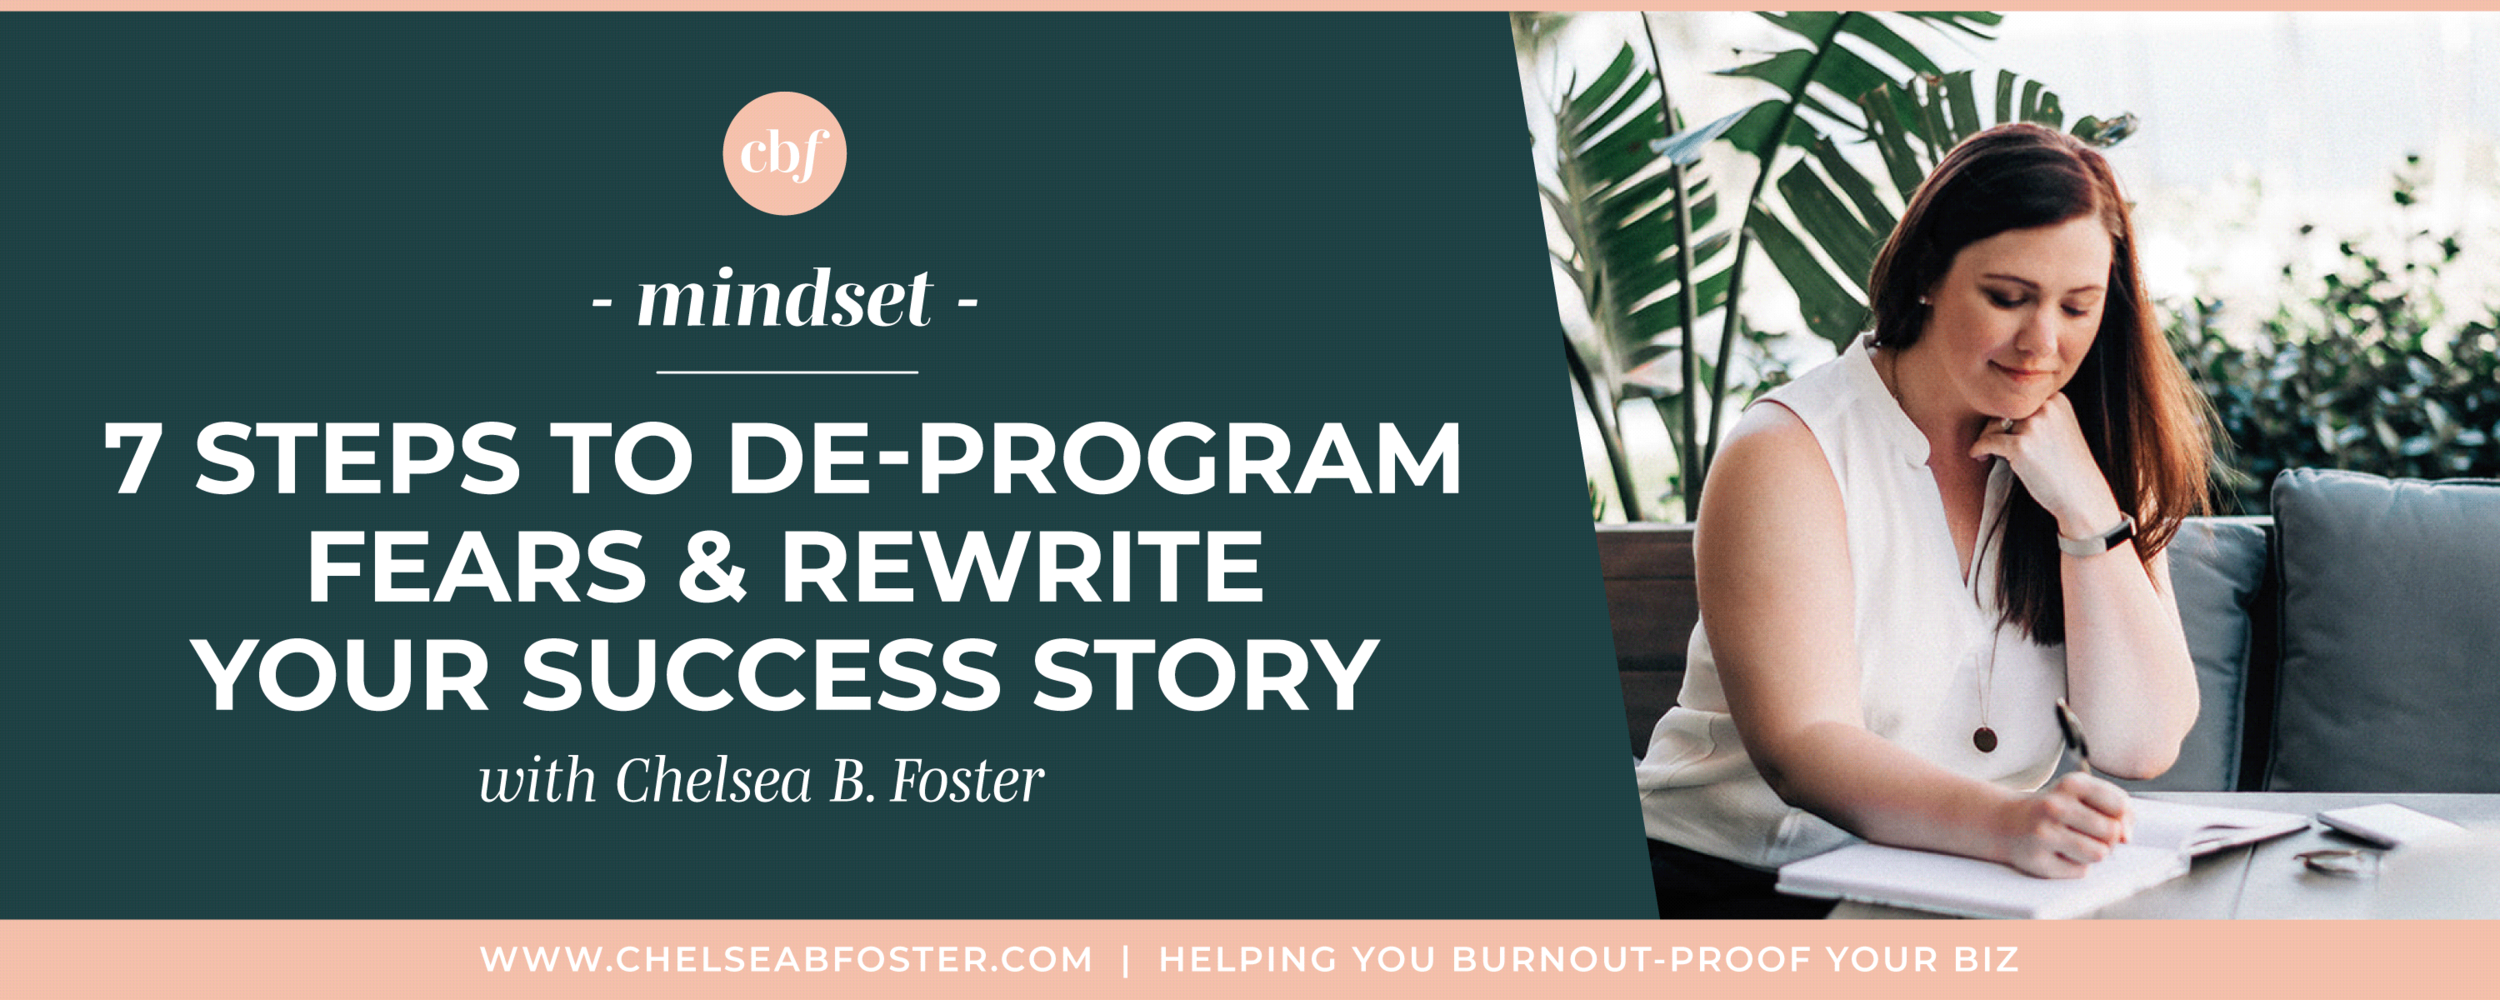 Burnout-Proof Your Biz with Chelsea B Foster | 7 Steps to De-Program Your Fears & Rewrite Your Success Story  ||  Burnout-Proof Your Business | Workflow & Productivity Specialist | FOMO | Meaning of Success | Fears | Letting Go of Your Fears | 7 Steps to Let Go of Fears | Worries | Doubts | Imposter Syndrome | Mindset  letting go of FOMO, fear of missing out, learning to eliminate stress as an entrepreneur, preventing burnout in your biz, honoring yourself, business tips for multi-passionate creatives, chelsea b foster, women who podcast, female podcaster, doing the work, mindfulness